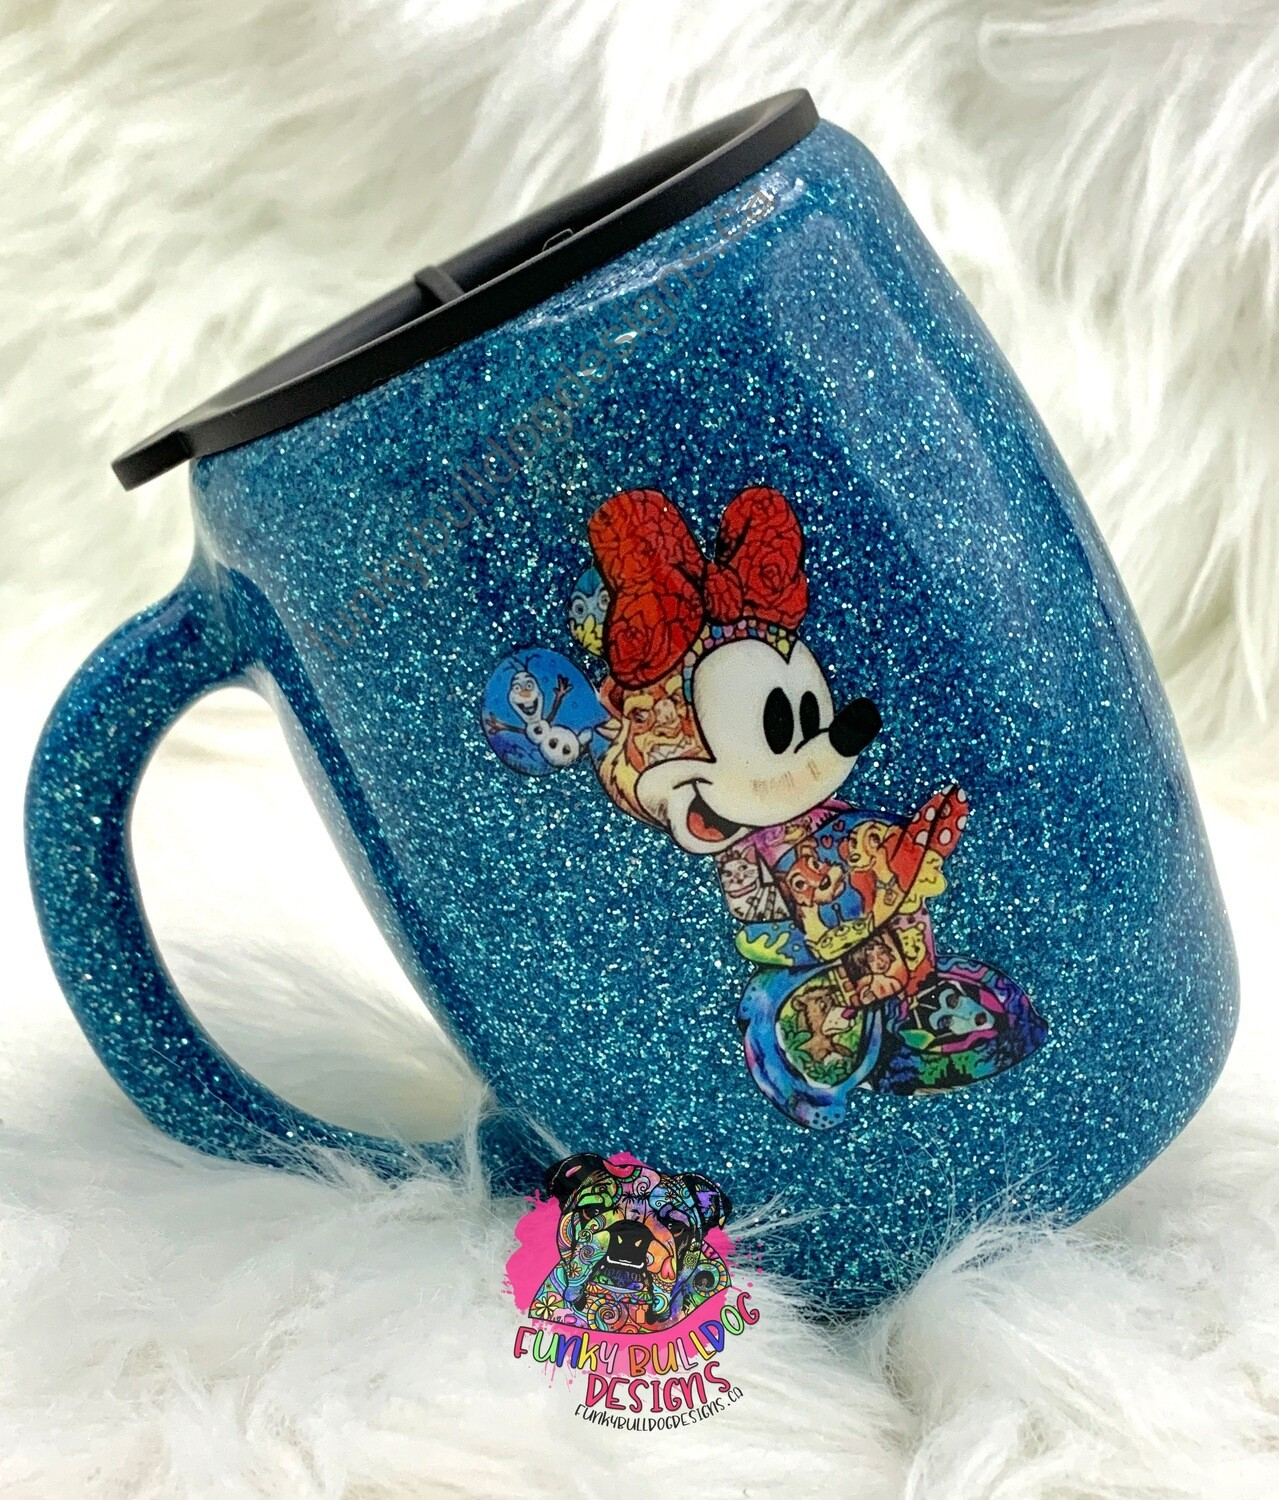 14oz stainless steel painted and glitter tumbler - Minnie